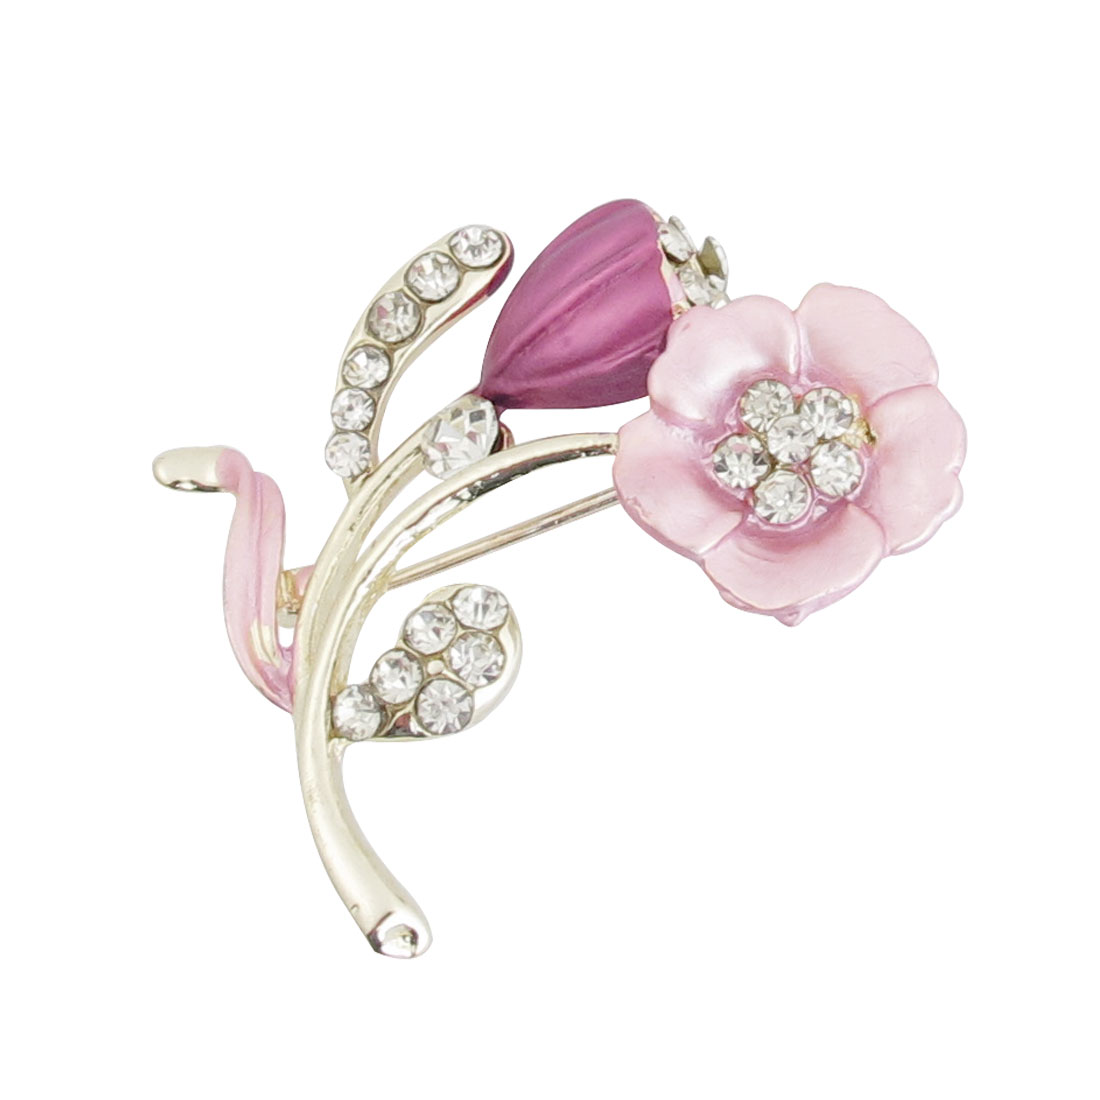 Rhinestone Detail Pink Flower Branch Brooch Pin Bridal Decoration